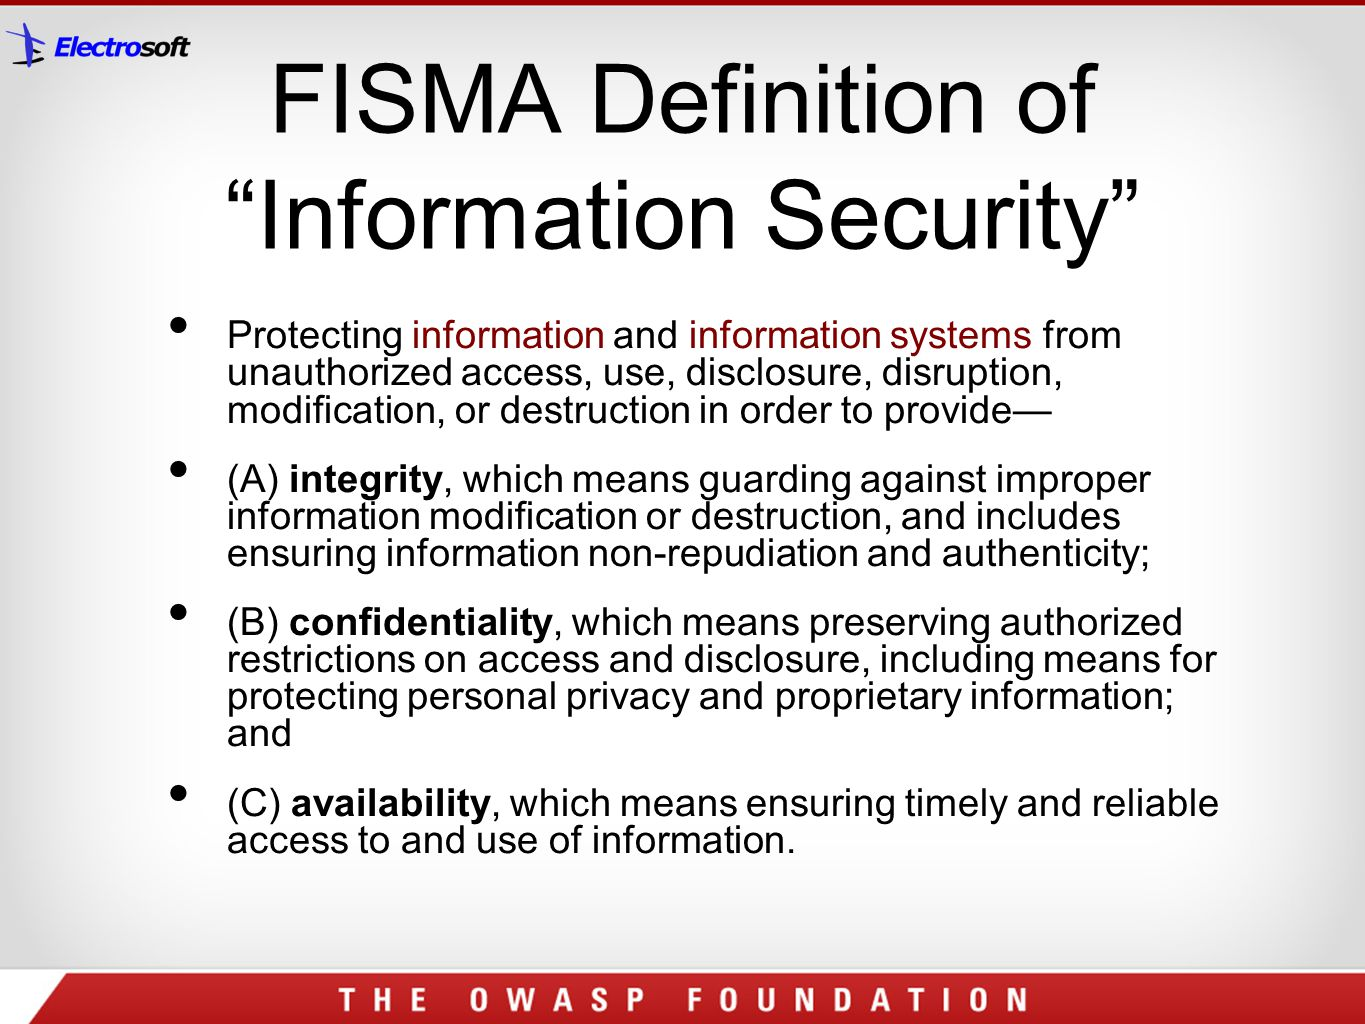 FISMA Definition of Information Security